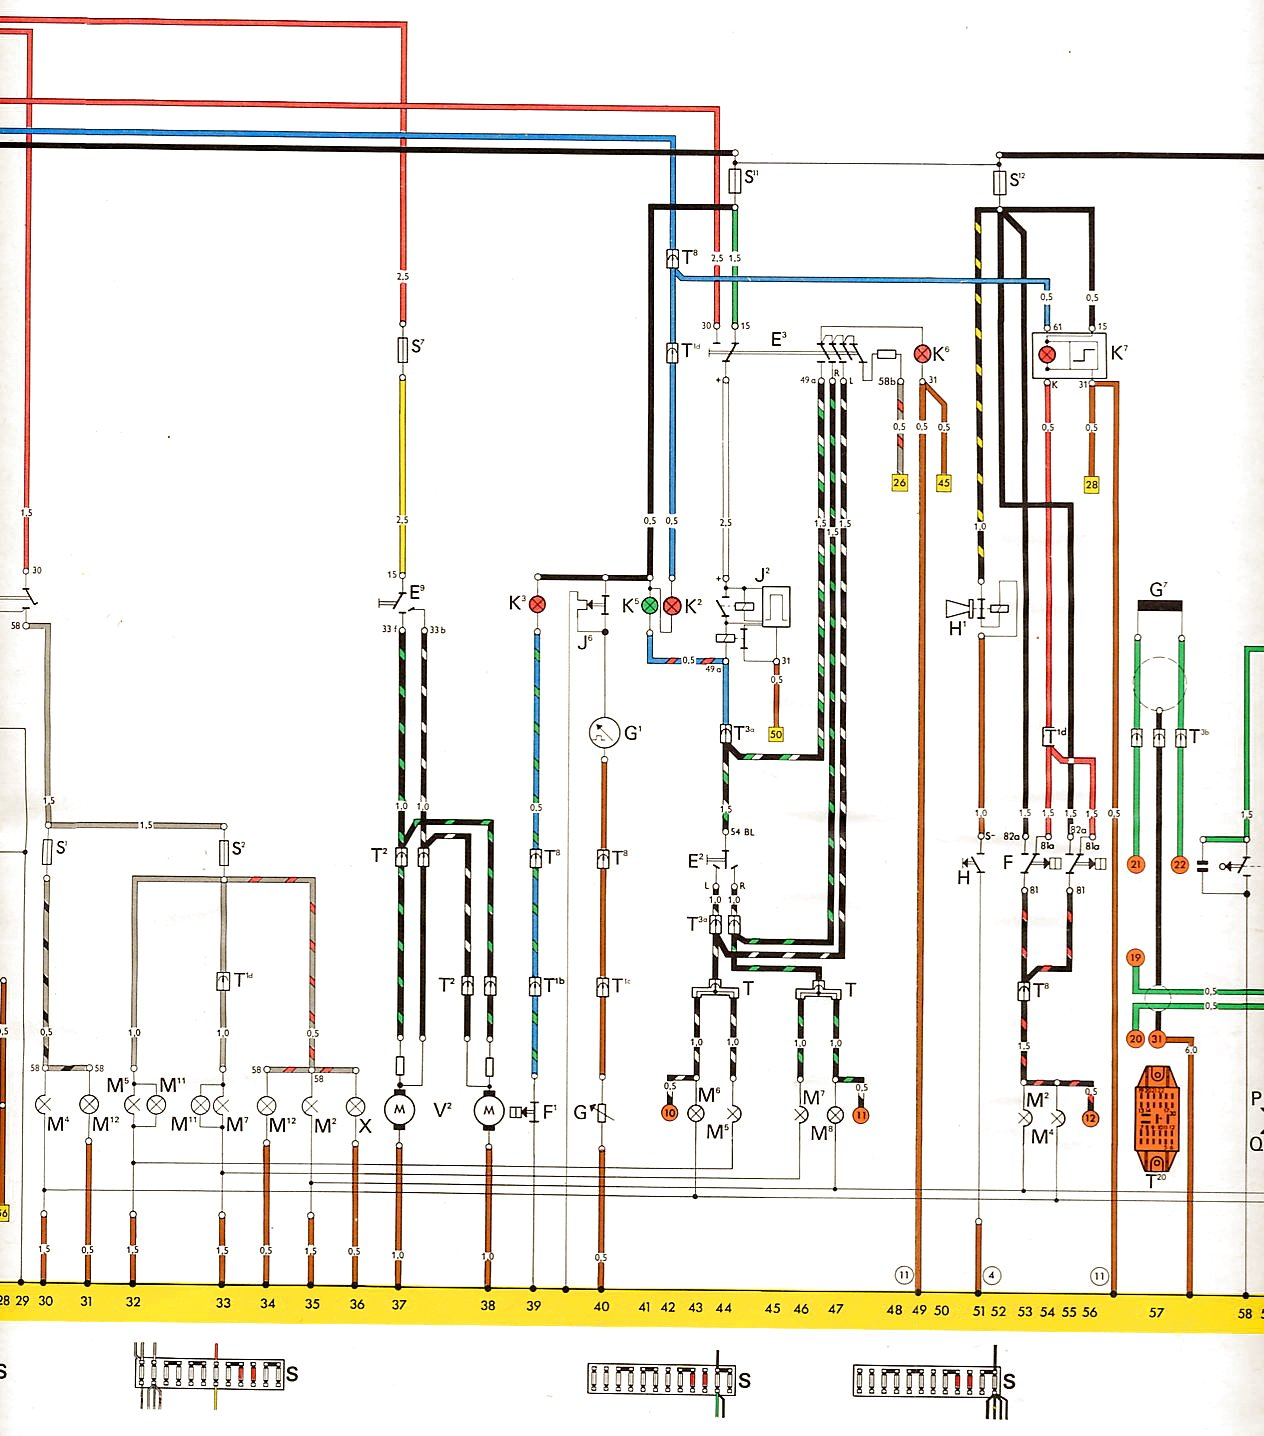 Vw wiring diagrams 1 2 3 4 asfbconference2016 Image collections